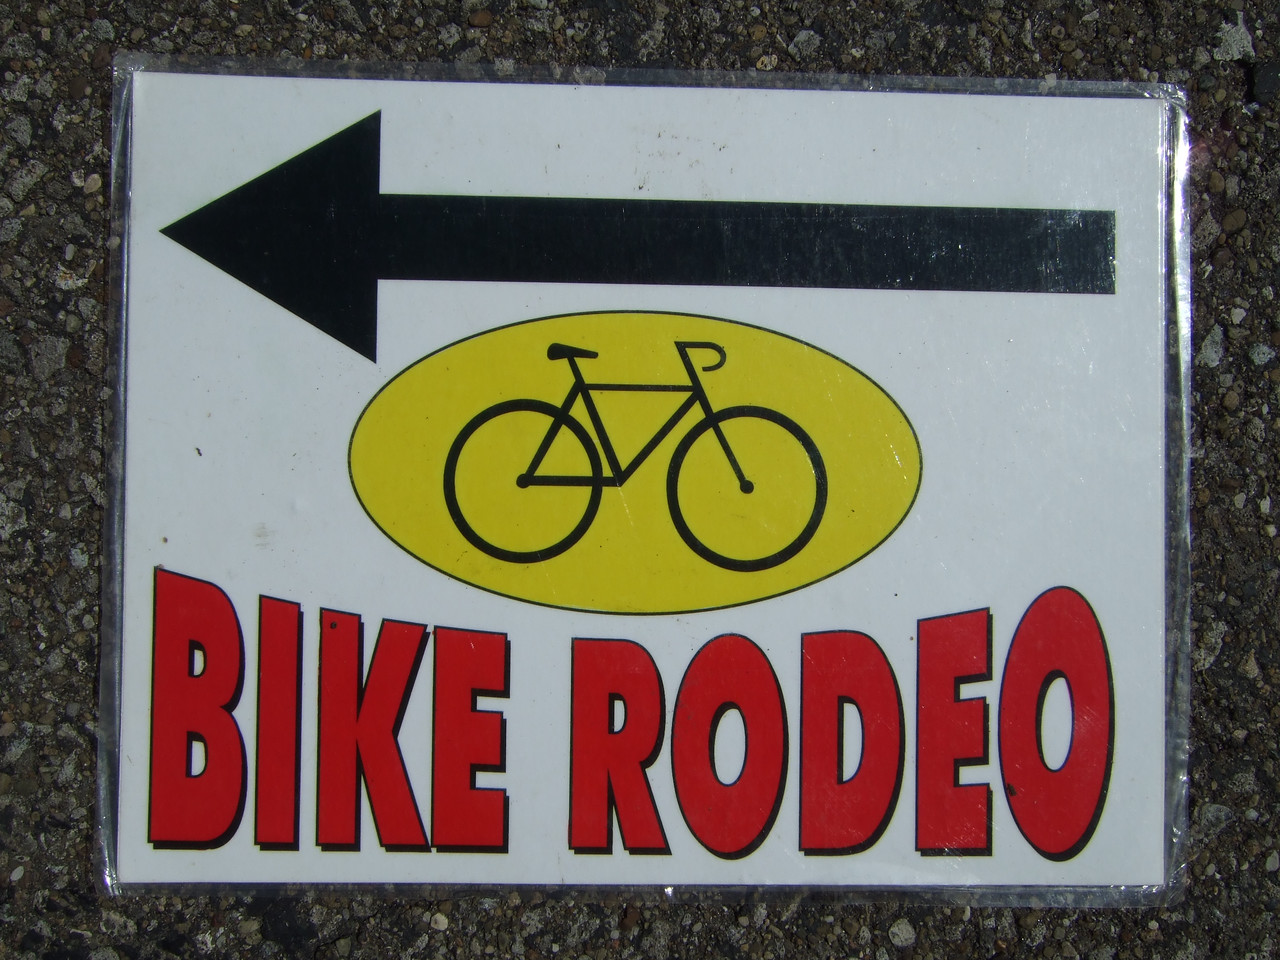 Bike Rodeo sign